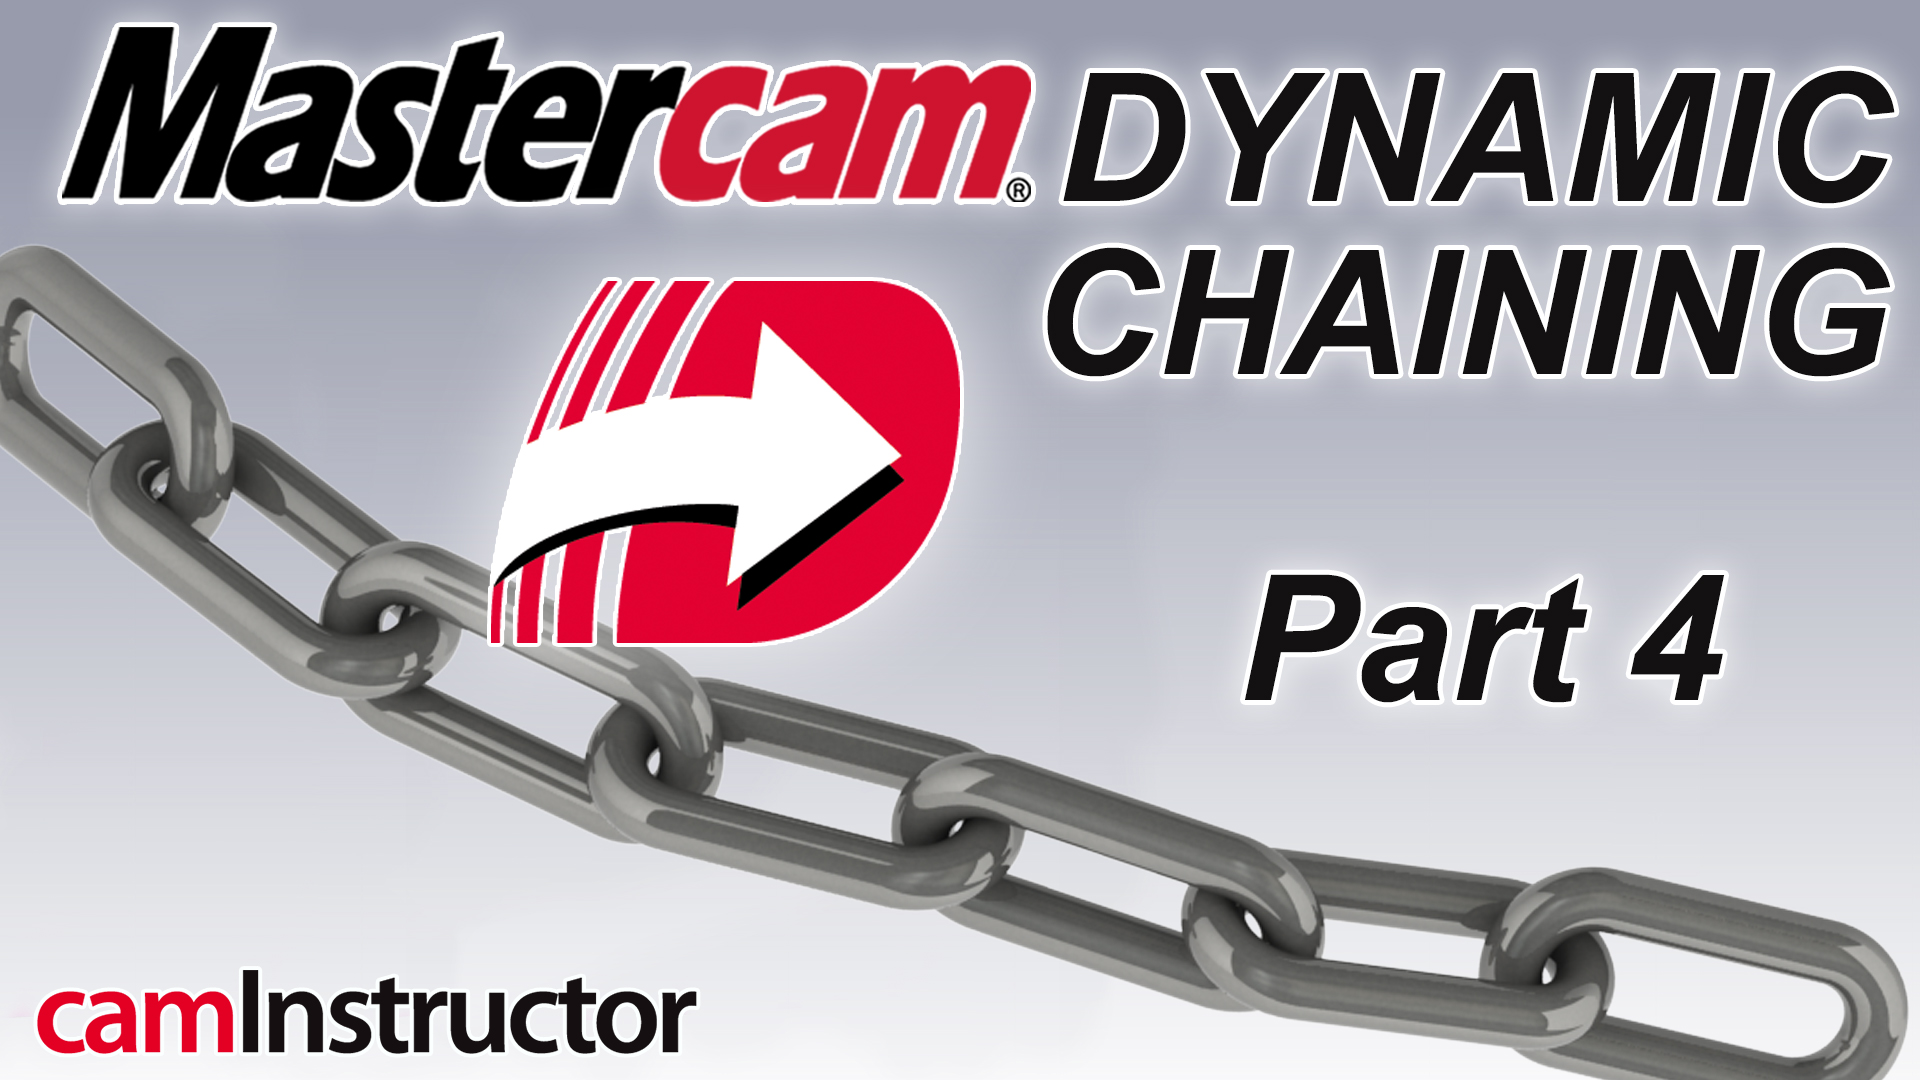 Dynamic Chaining Part 4